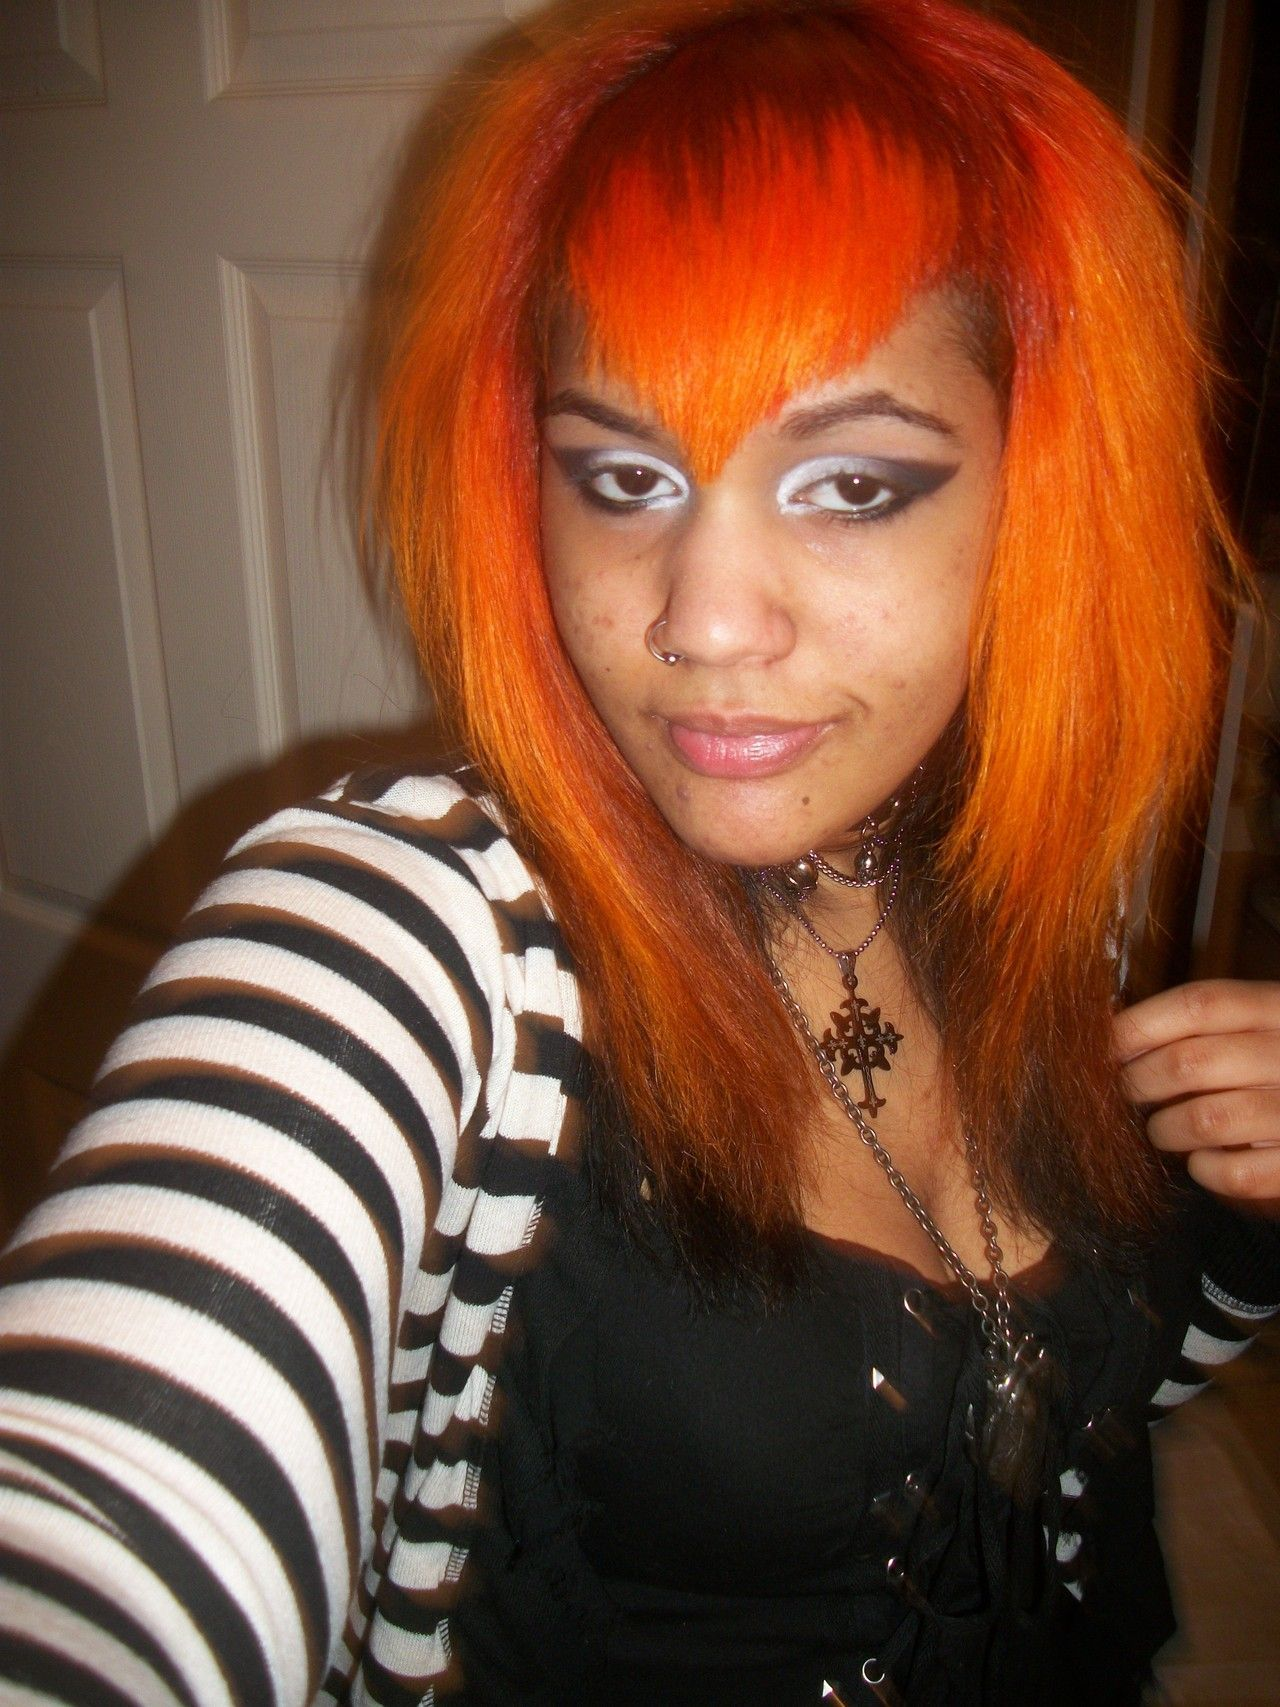 [image: mixed goth with orange hair and black and white eye makeup]  Me before school the other week.